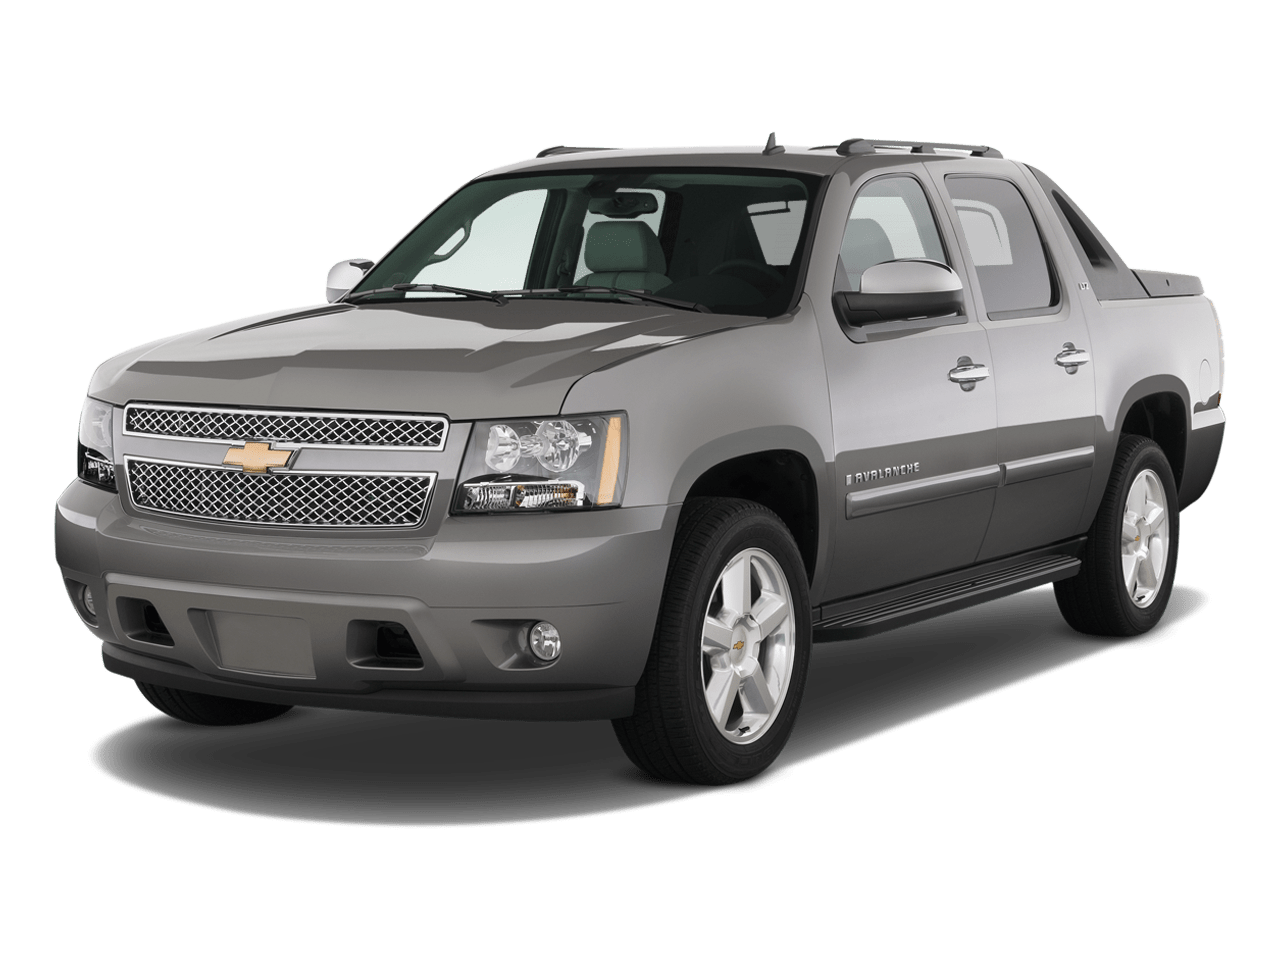 medium resolution of wiring schematic for 2009 chevrolet avalanche wiring diagrams data wig wag flasher diagram wig wag wiring diagram chevy avalanche